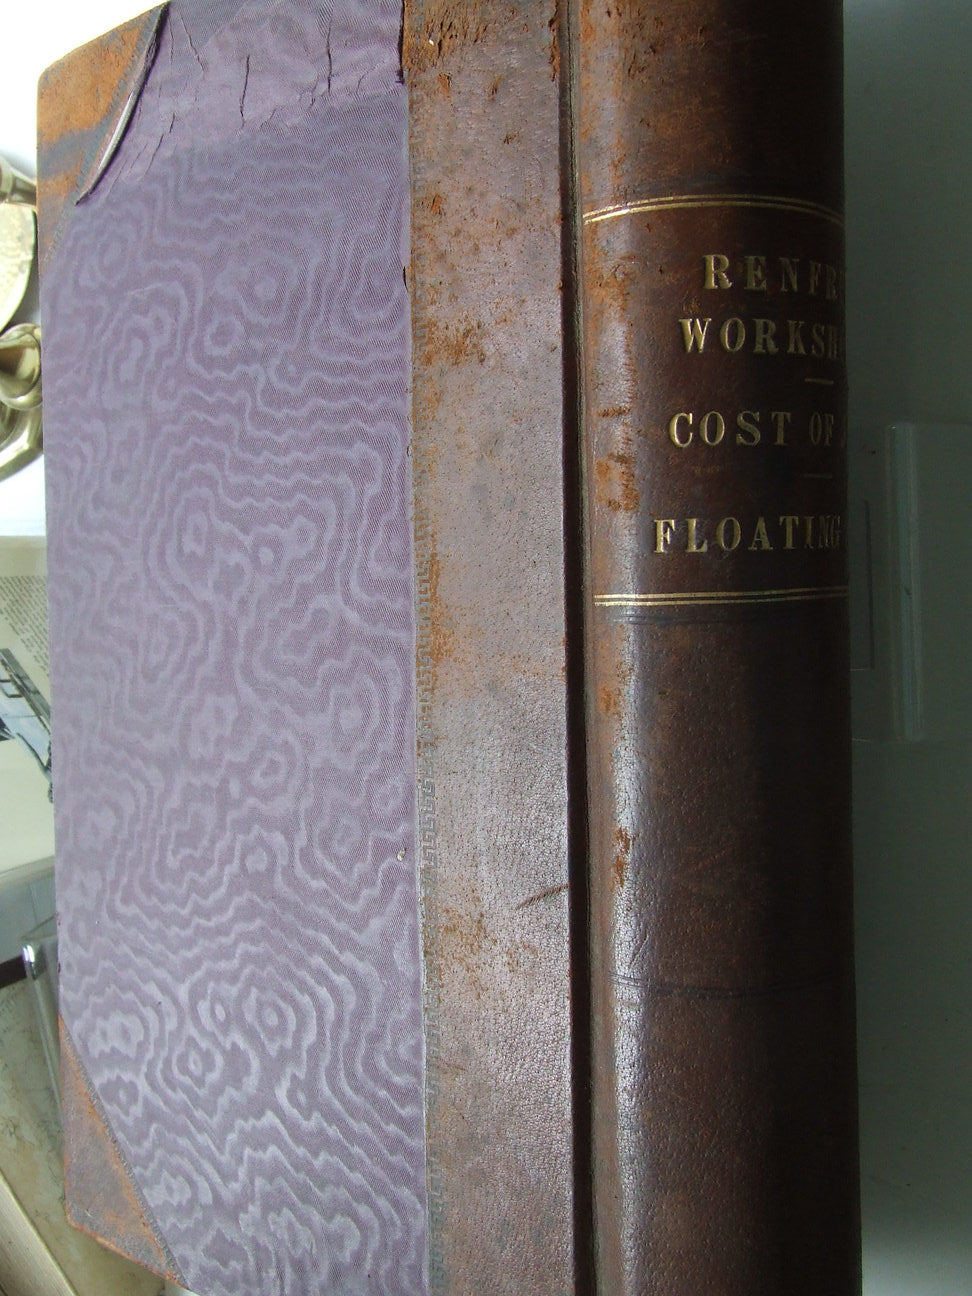 Clyde Navigation Trust. three large ledger volumes